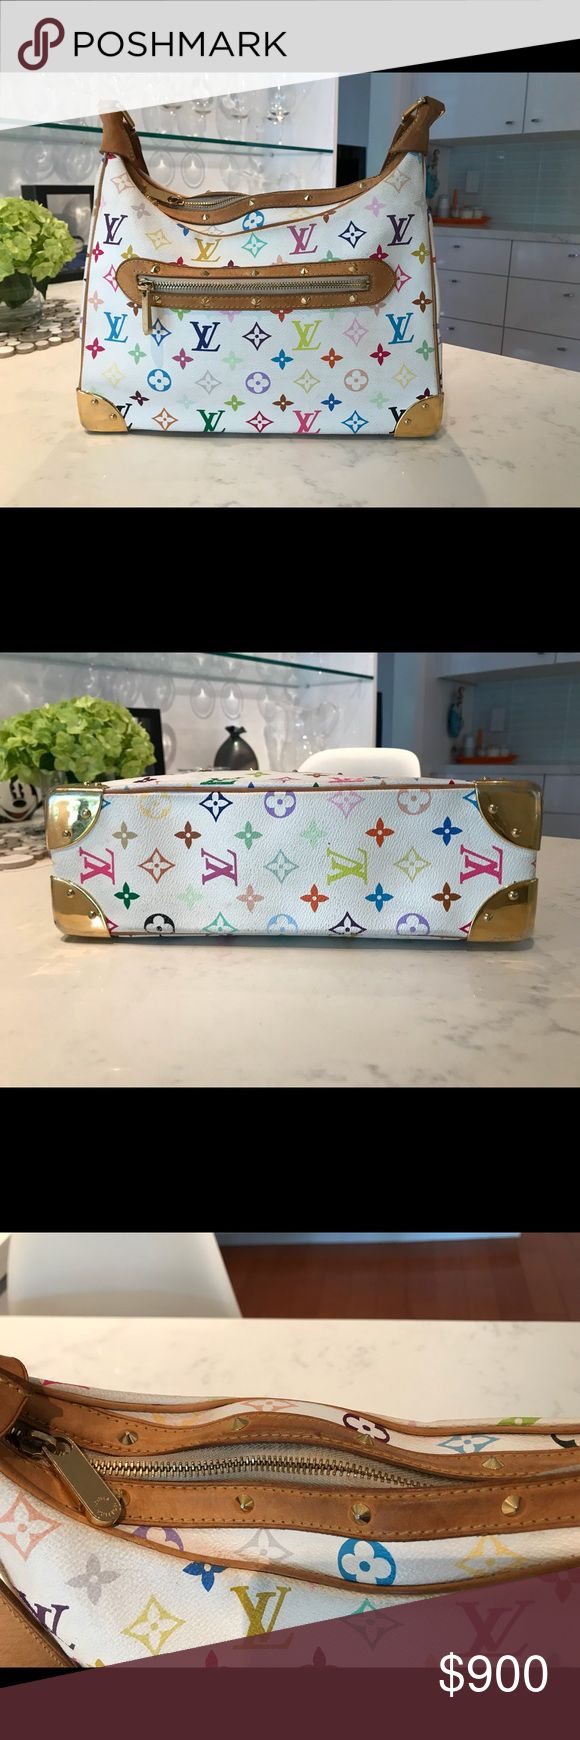 Louis Vuitton Murakami Multicolor Purse. Authentic 100% authentic Louis Vuitton multicolor bag. Purchased in New Orleans in 2006. Good Pre-own condition. Louis Vuitton Bags Laptop Bags